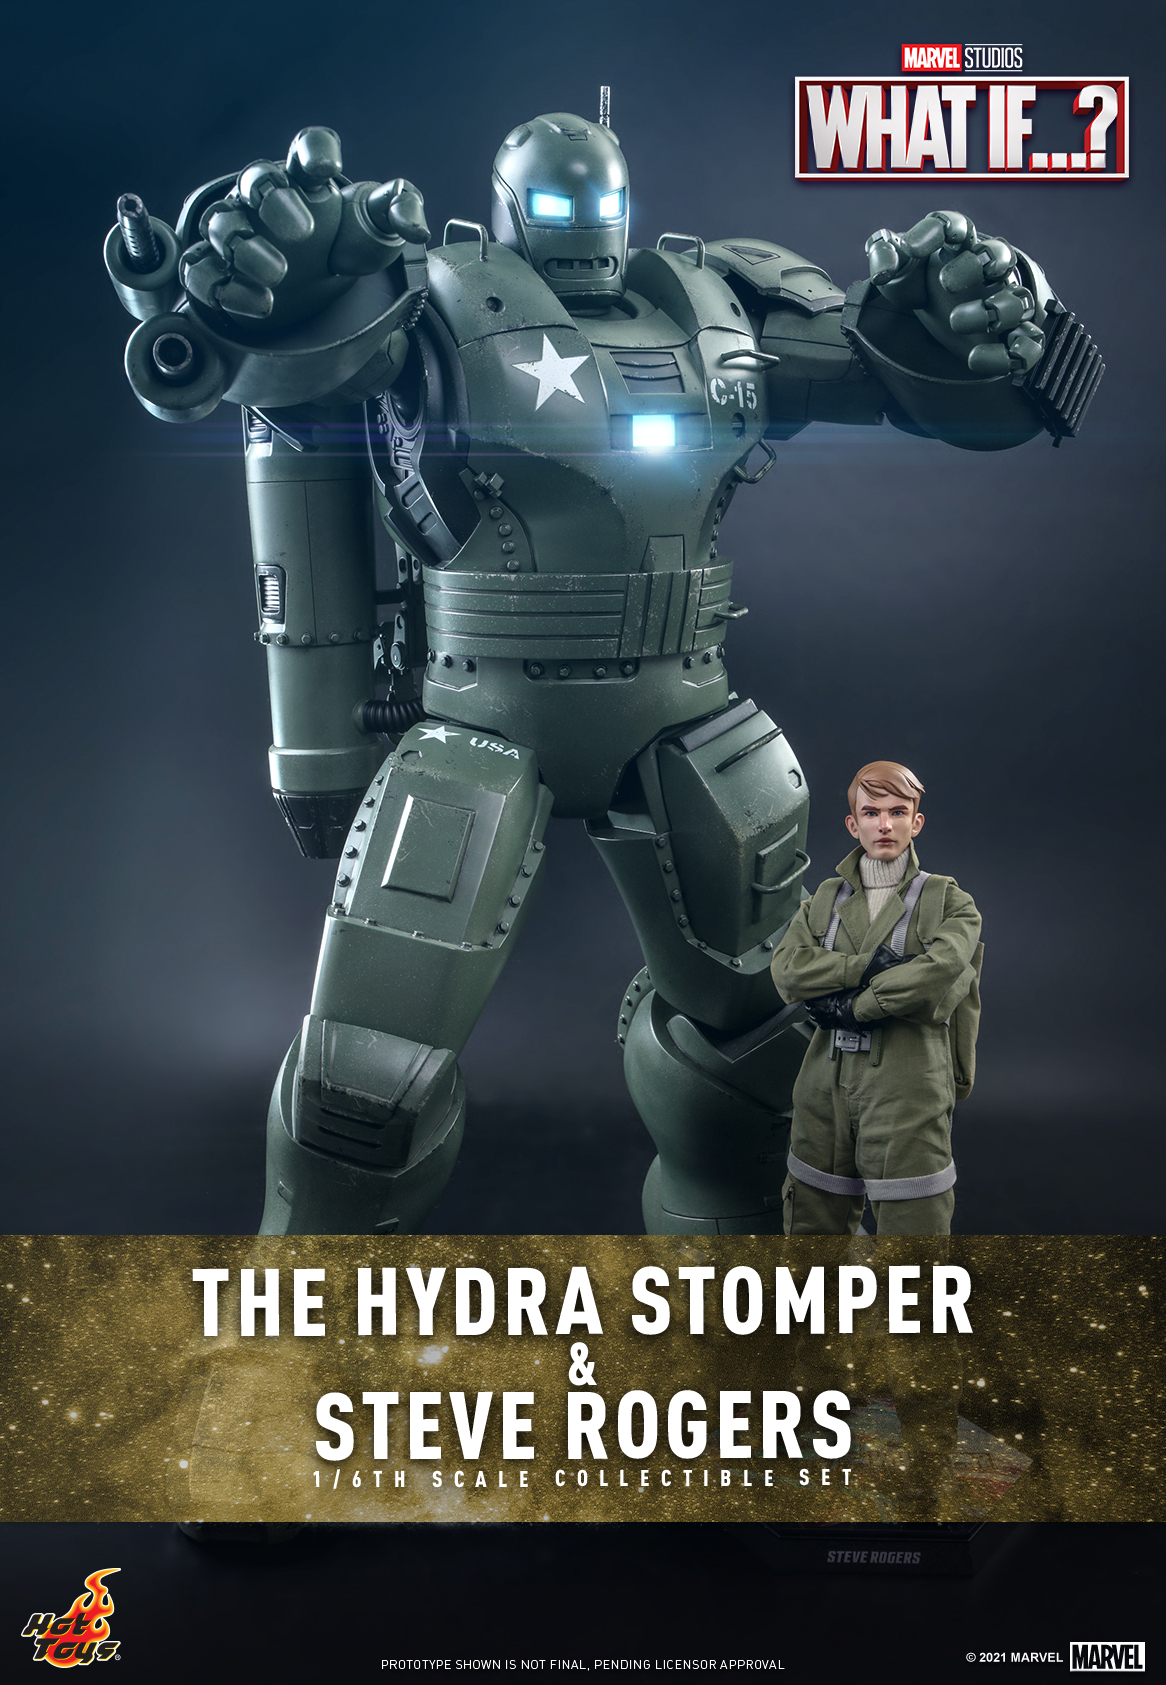 Hot Toys - What If - The Hydra Stomper & Steve Rogers collectible set_Cover